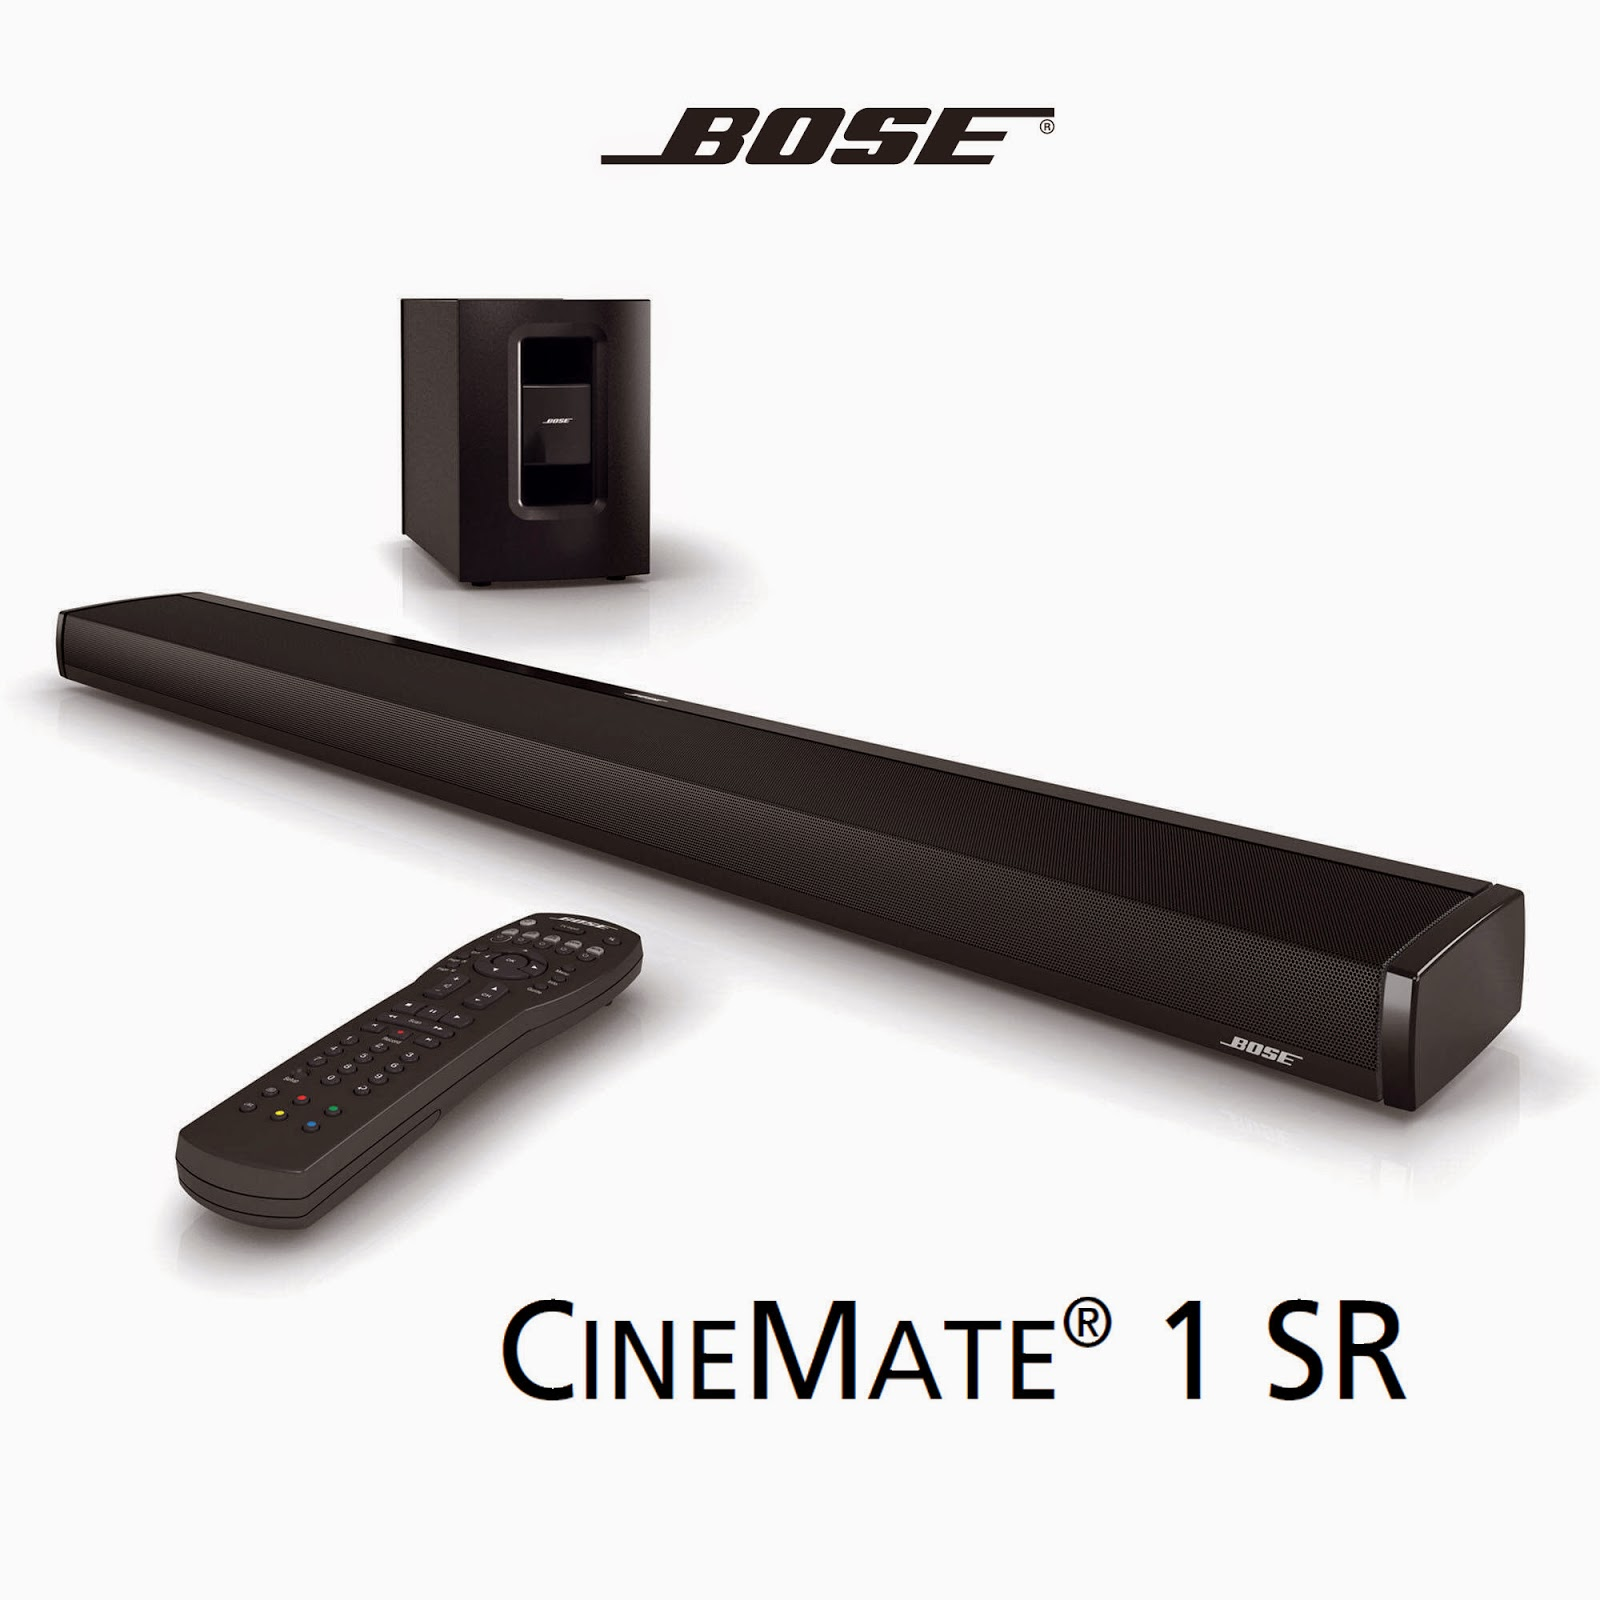 bose 130. cinemate 130 comes up with an additional new console(marked in the above pic) which connects sound bar output devices like tv, dvd or blue ray bose